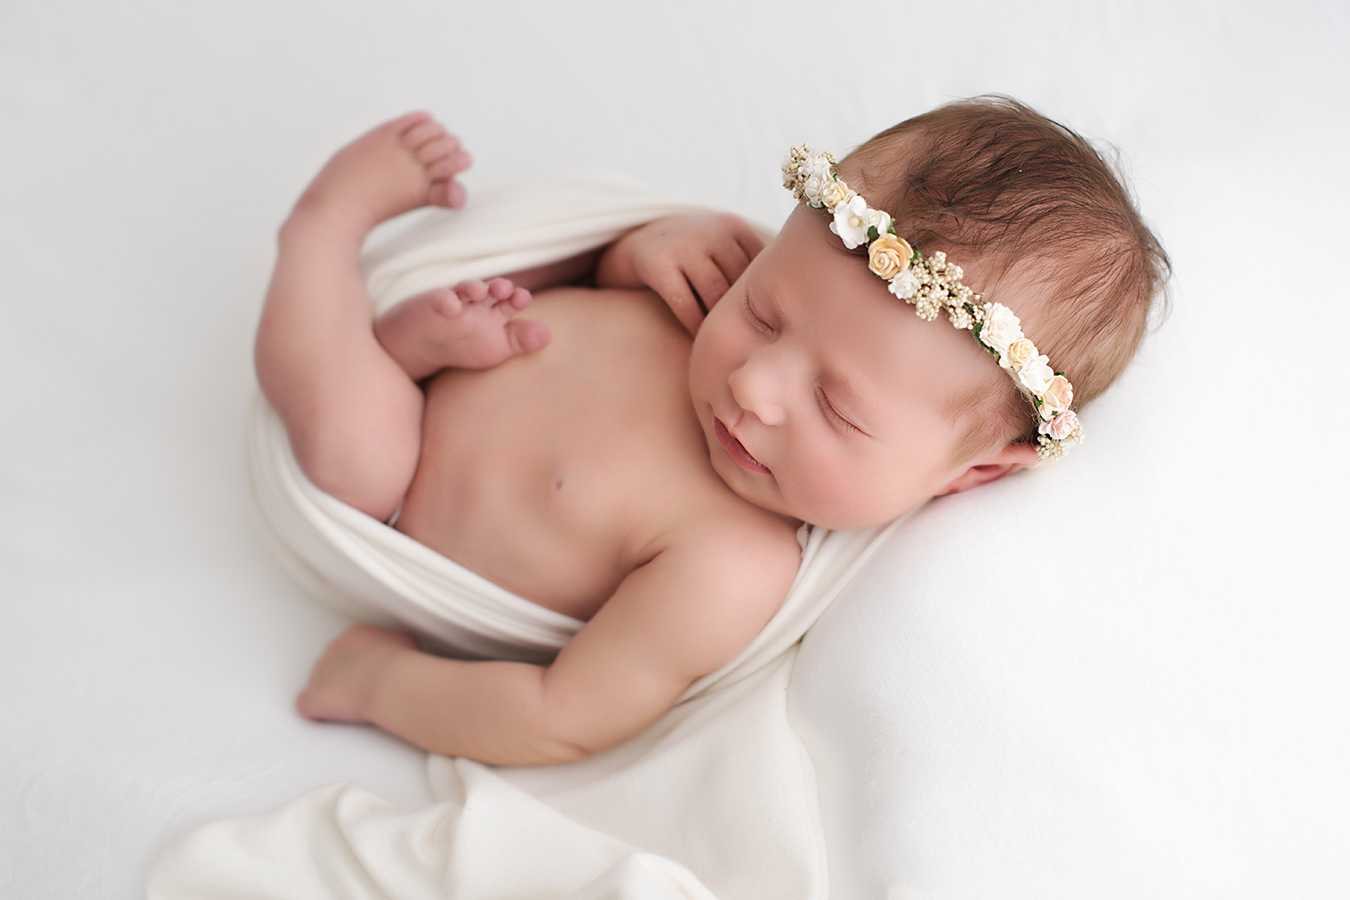 Newborn Baby Photos Stockport